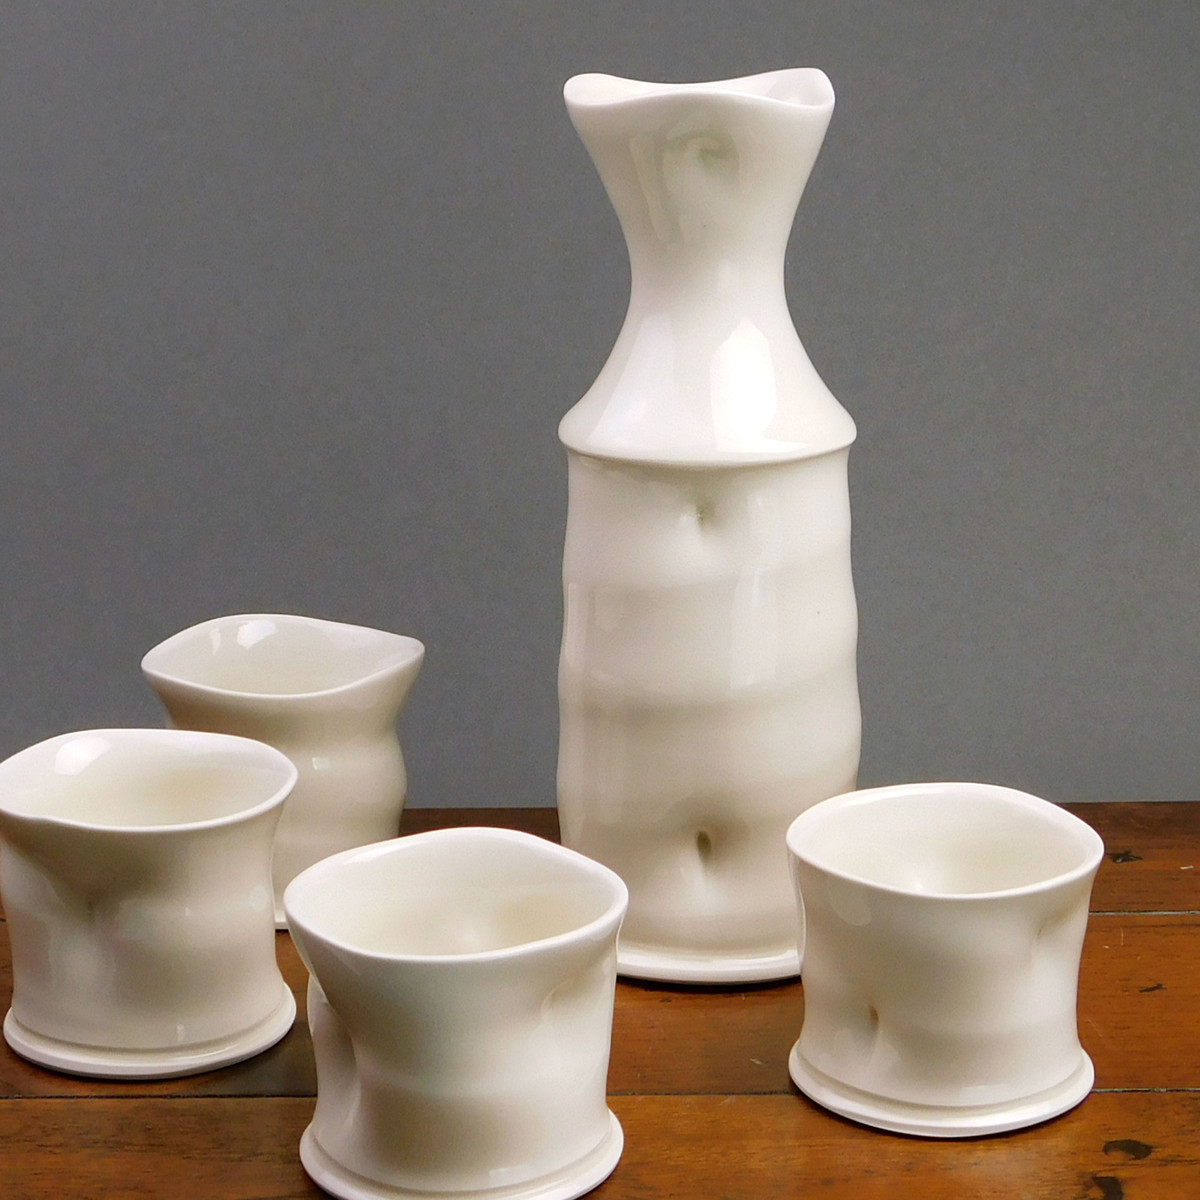 Multiple white porcelain carafes in assorted sizes sit on a wooden table.